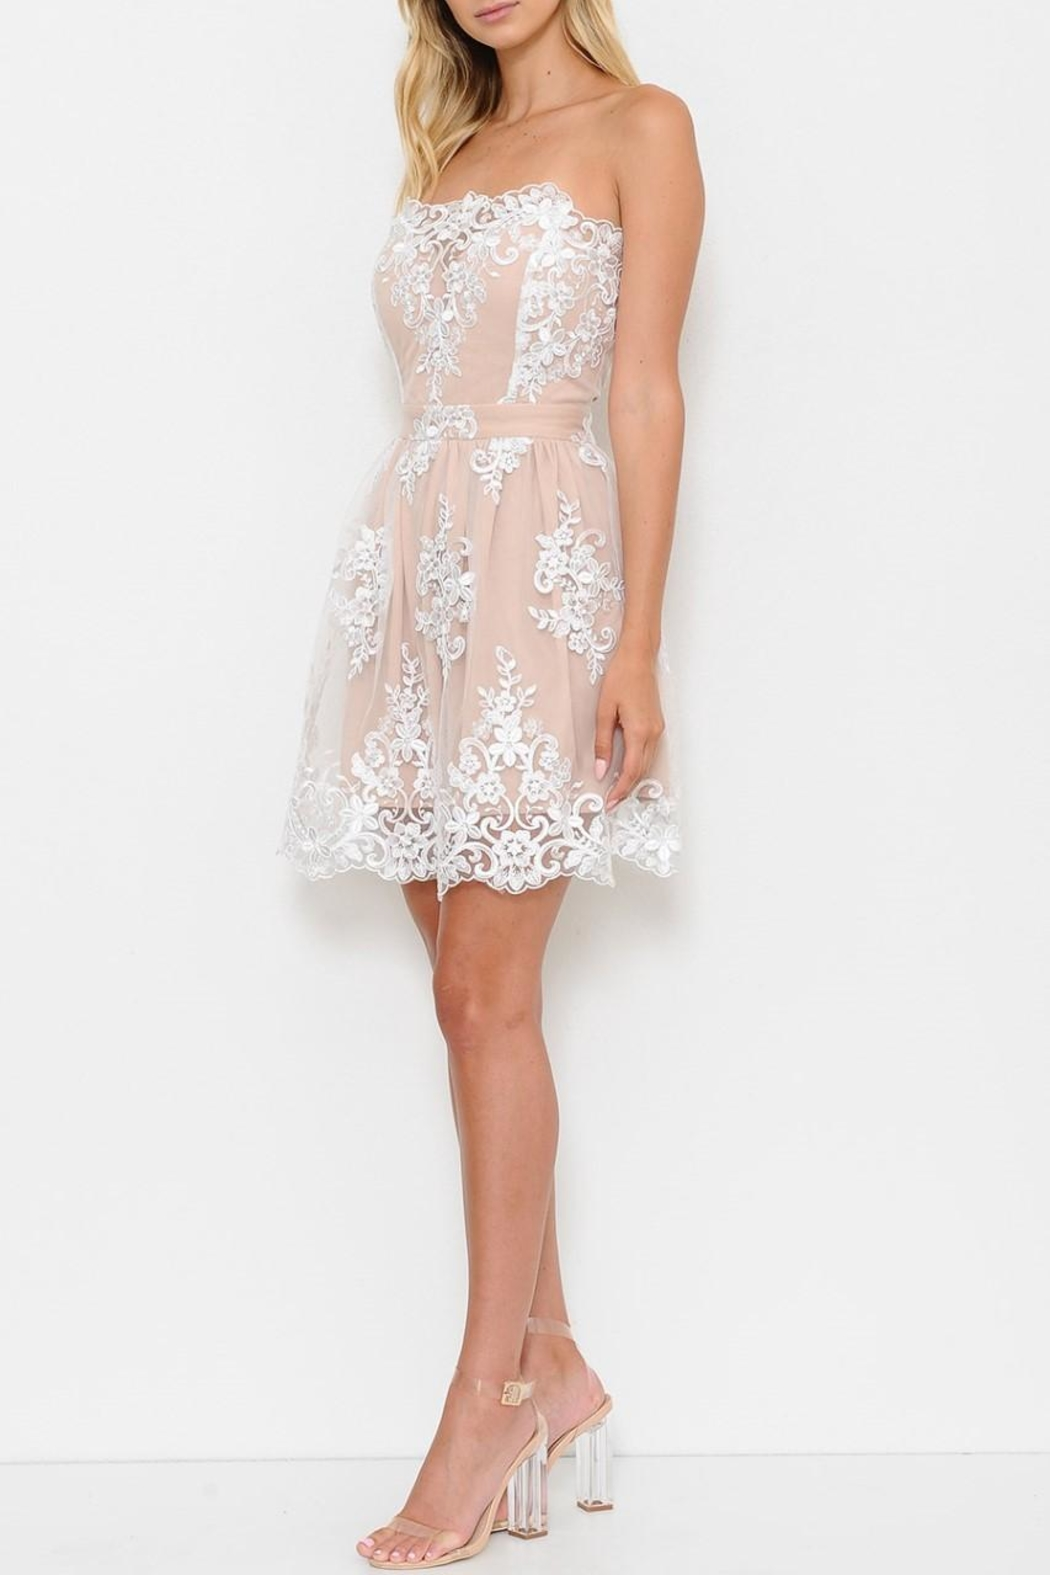 L'atiste White Lace Dress - Front Full Image